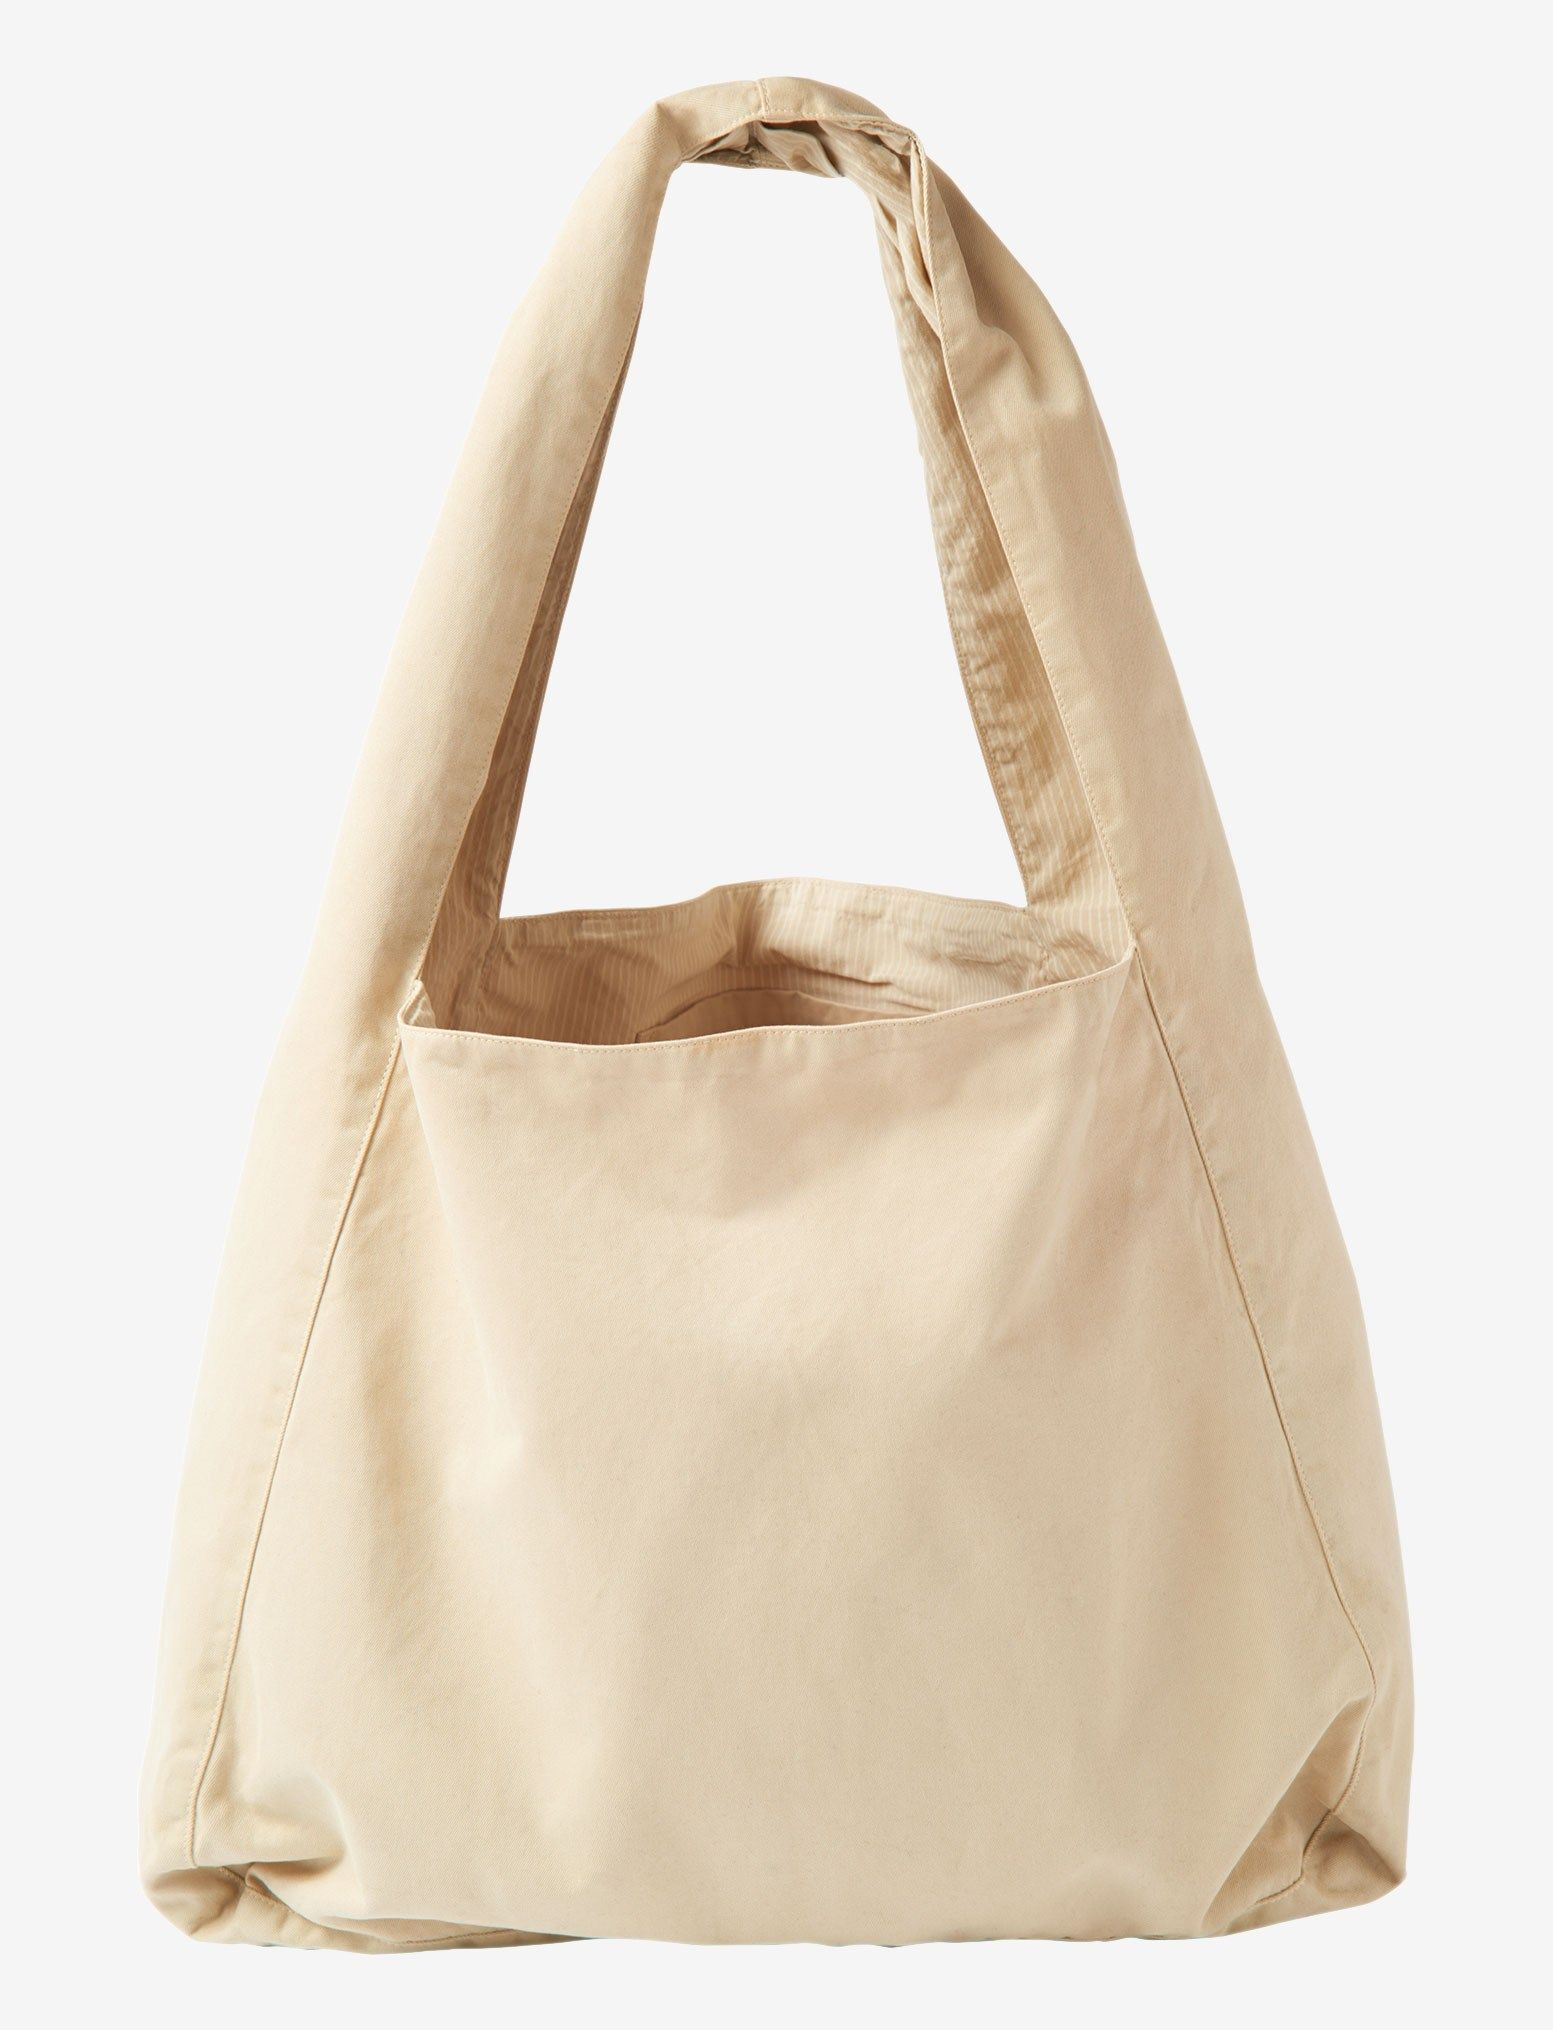 Oversized shopper in a comfortable, peachy cotton twill. Wide pleated straps and stitched-through internal pocket. Large, flat base. Lined in a garment-dyed stripe.